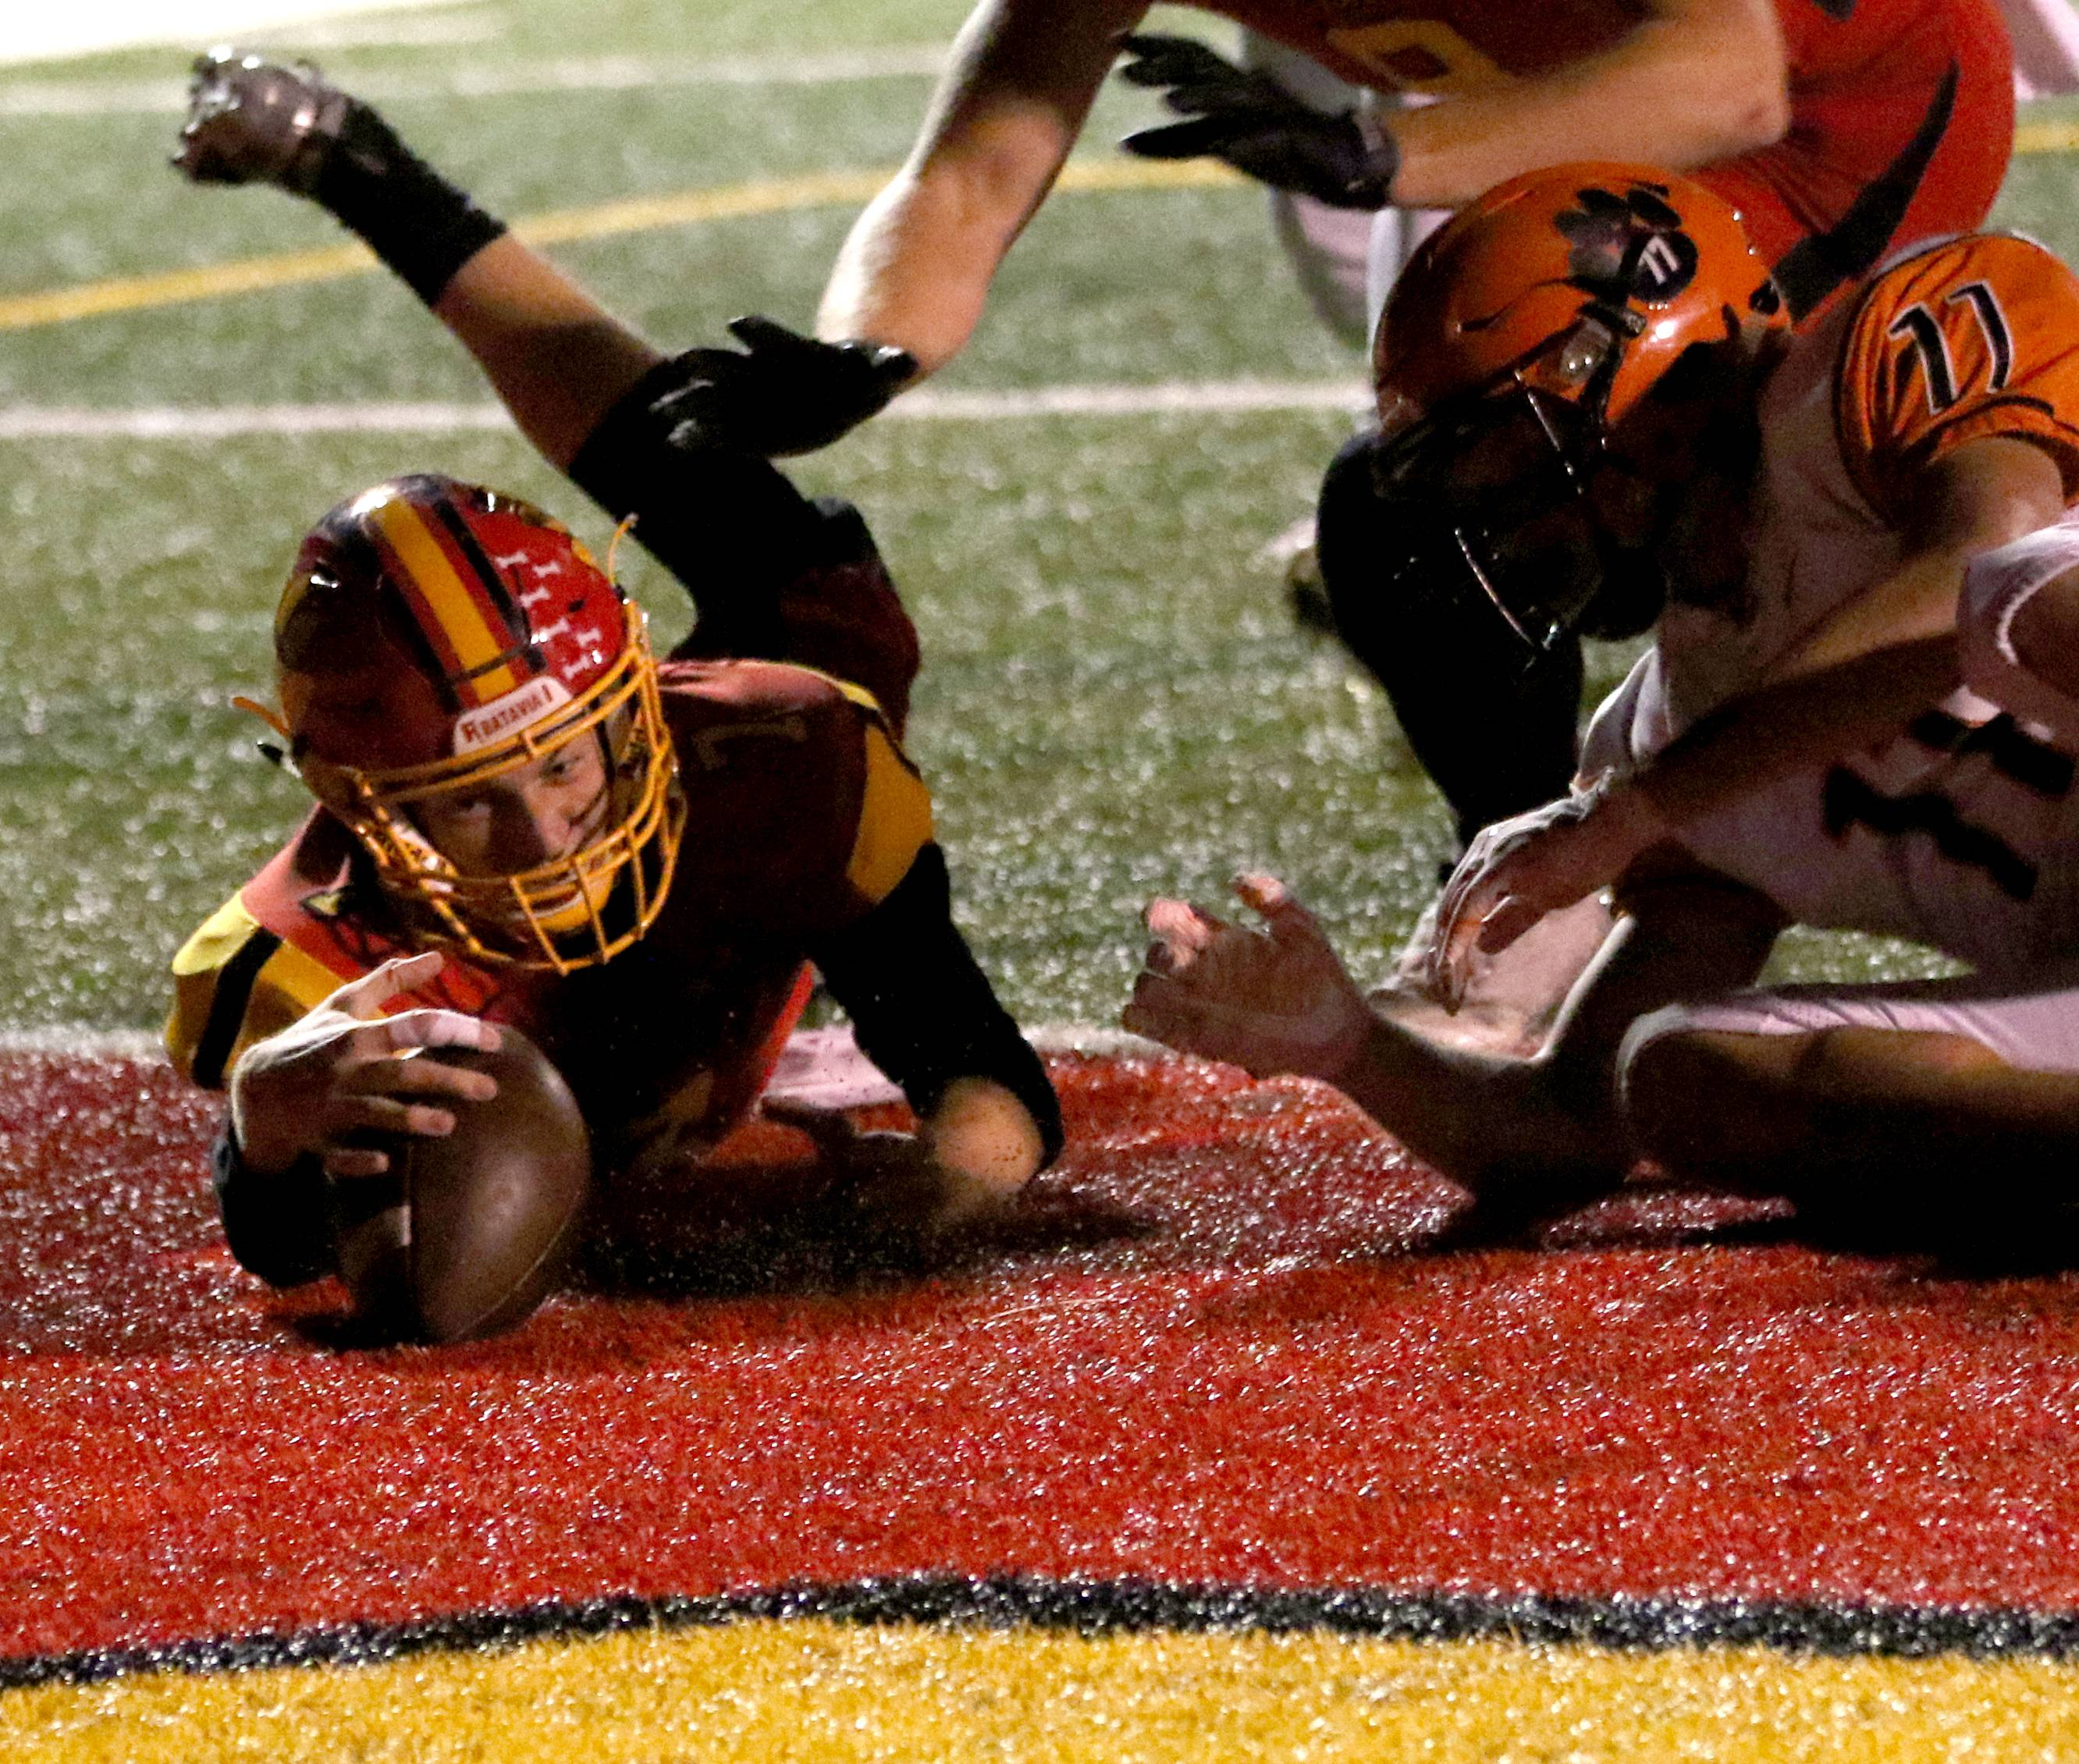 The ball popped loose from the hands of Batavia's Jack Meyers in the first quarter in the end zone against Wheaton Warrenville South during varsity football at Bulldog Stadium in Batavia Friday night. Here, Meyers recovers the ball for a touchdown.